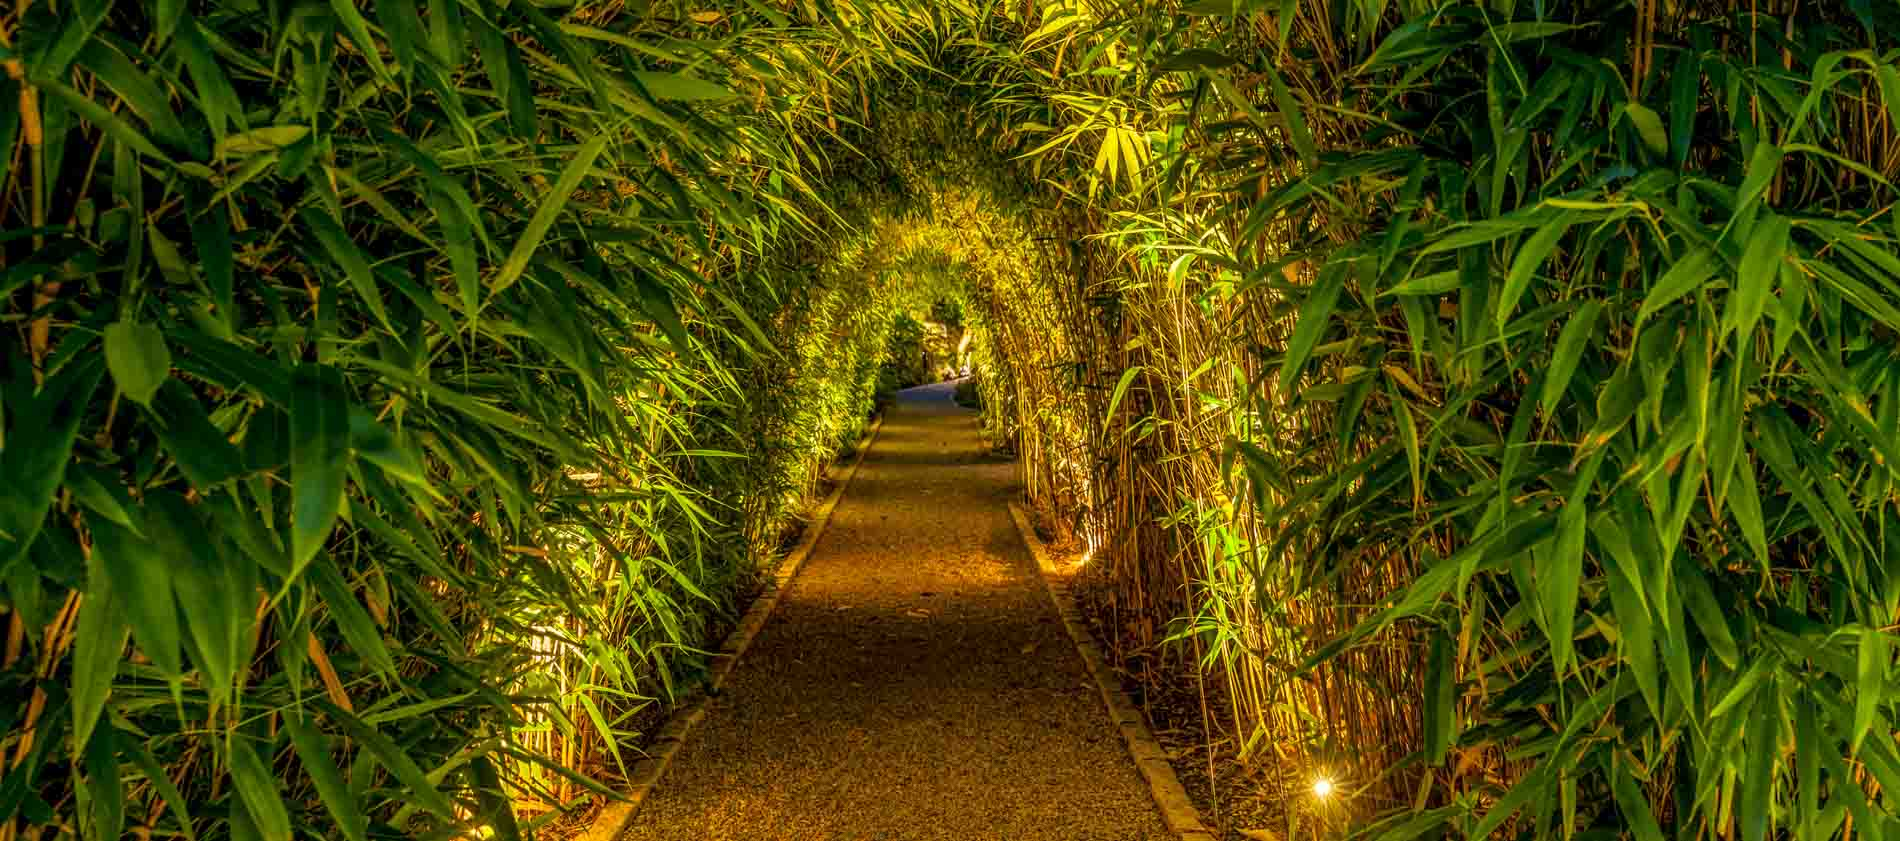 Bamboo-garden-tunnel-ireland